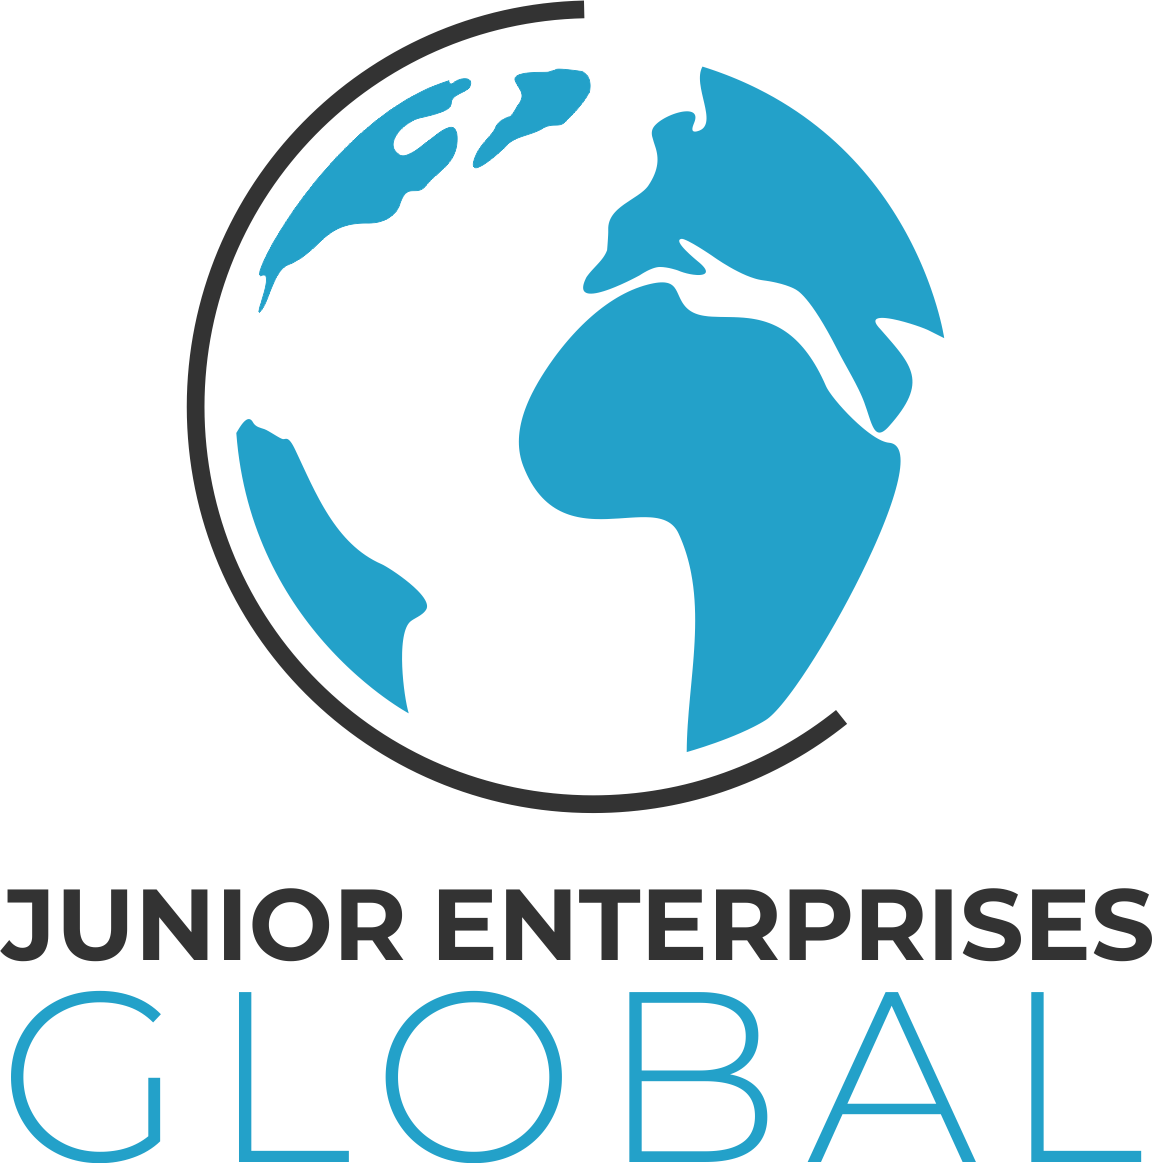 Junior Enterprises Global Logo